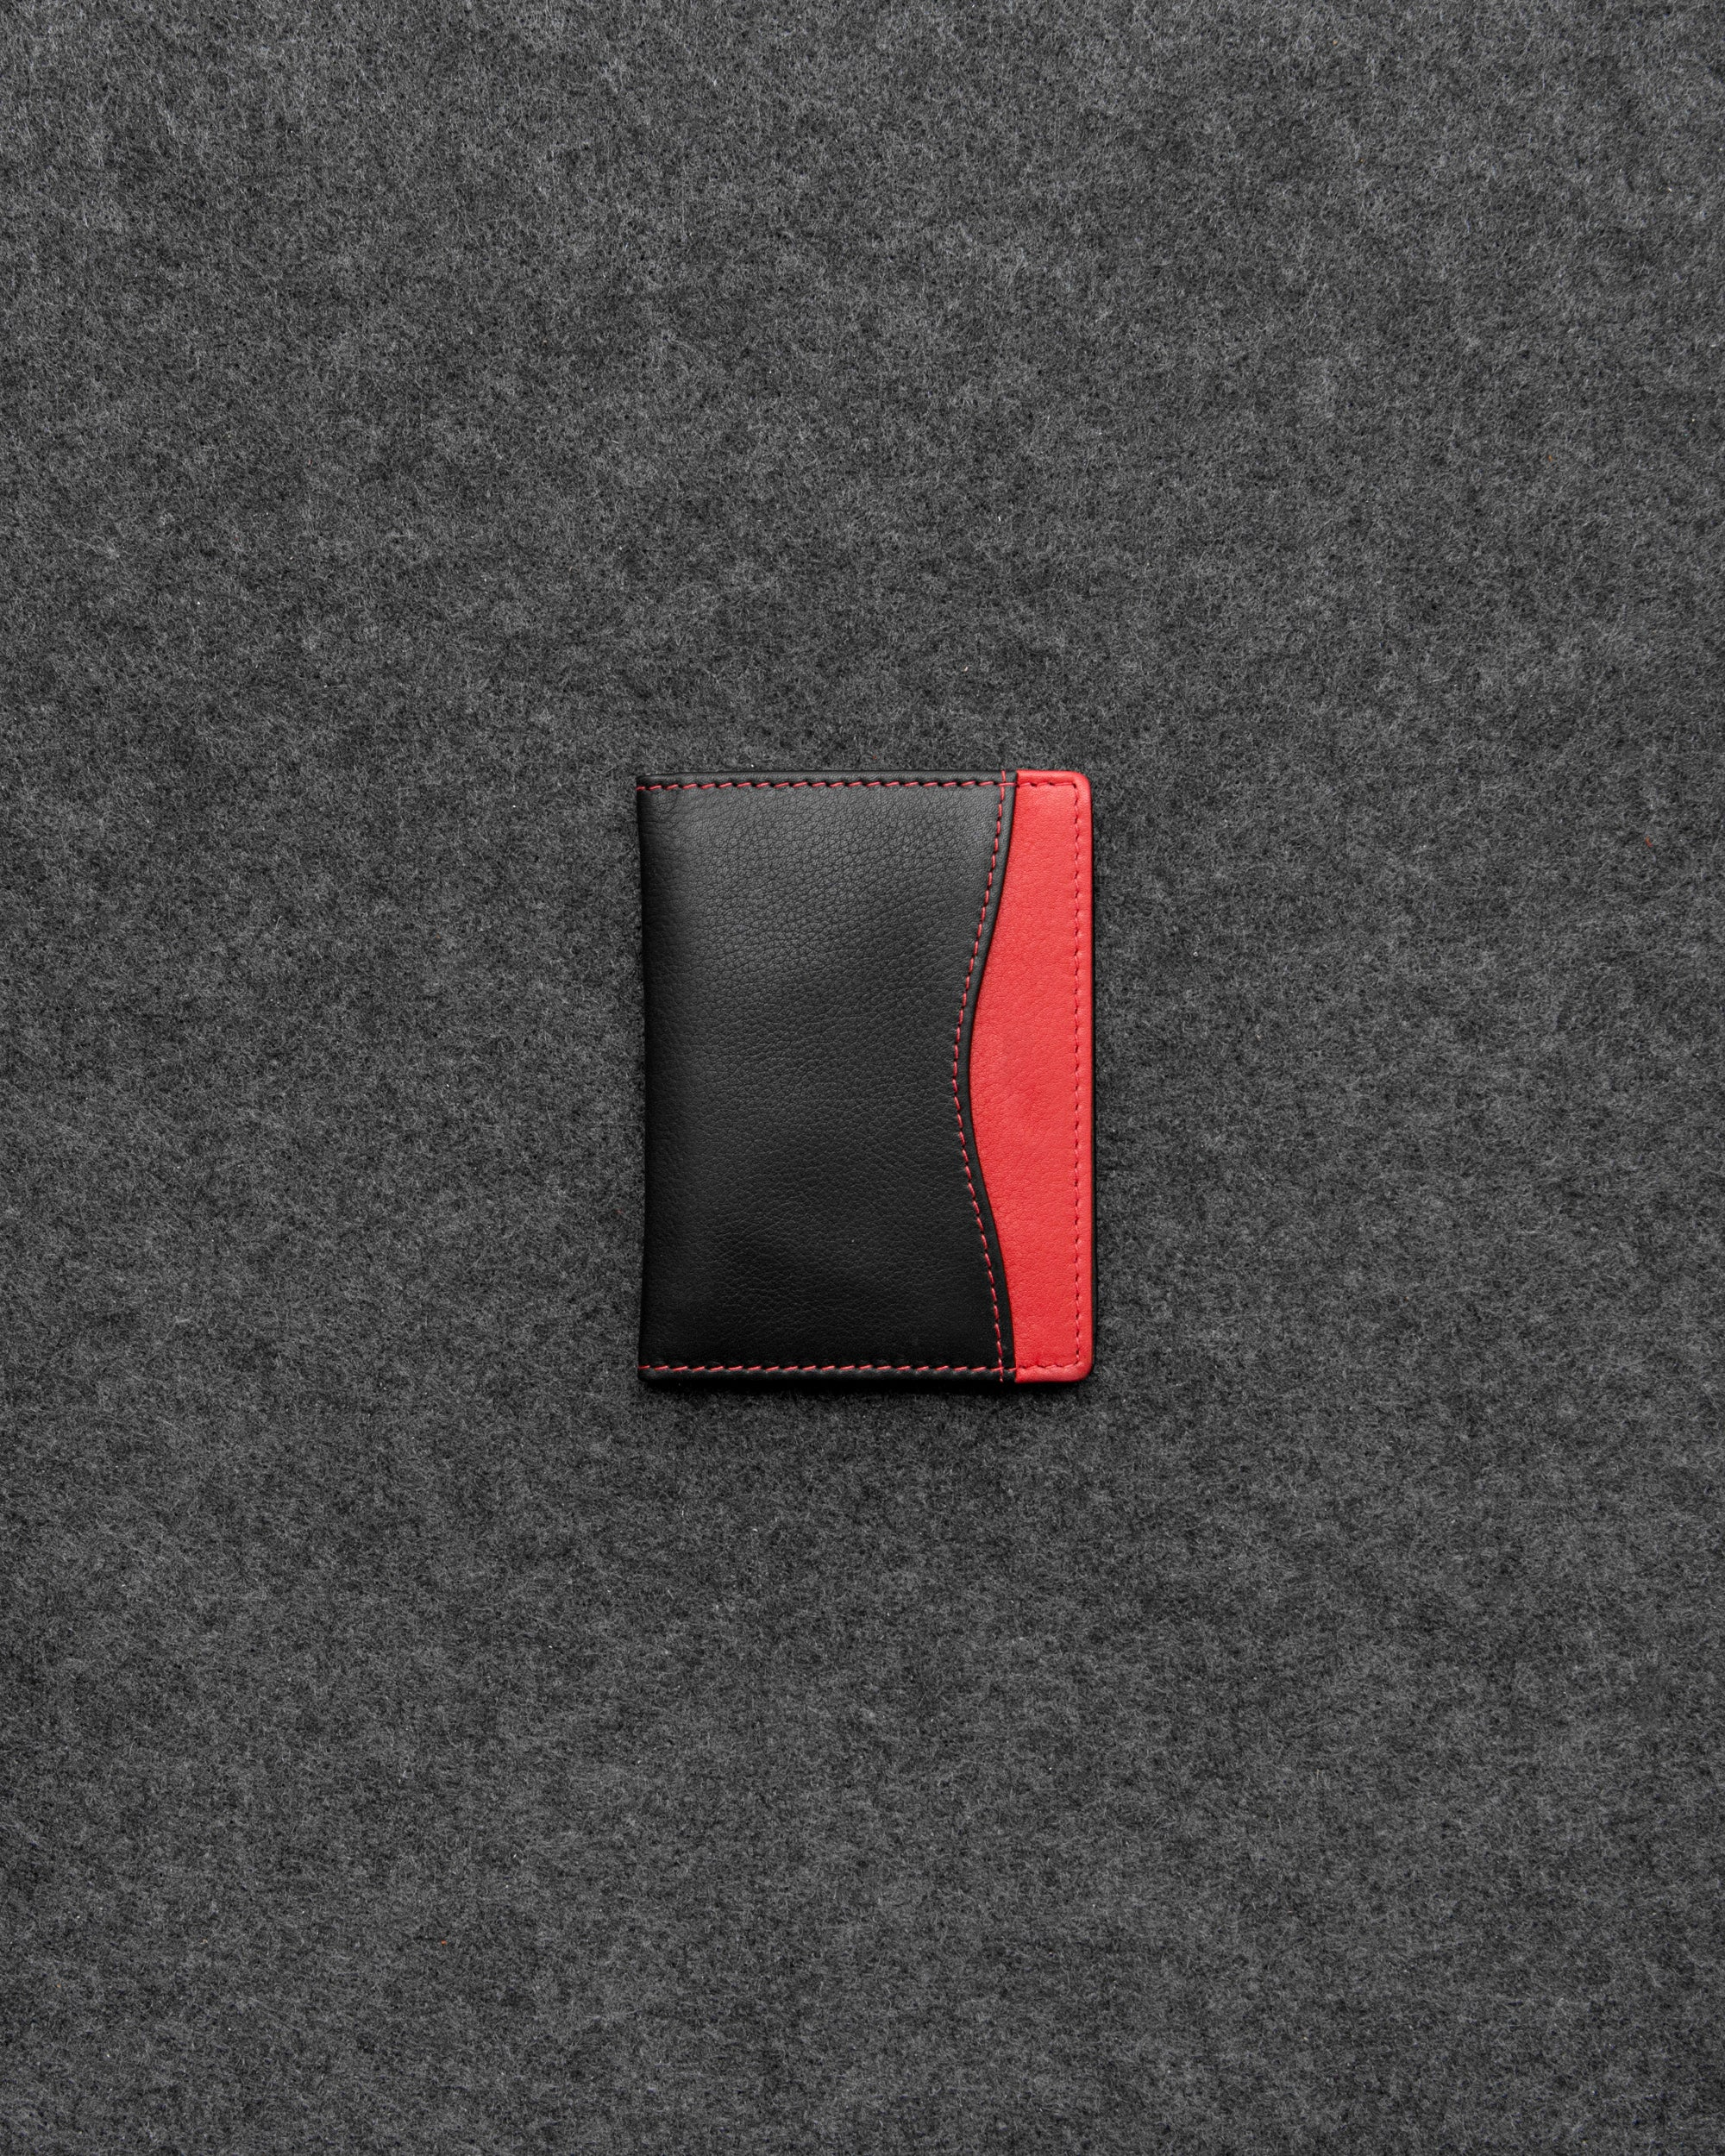 Cover 1 x Red Plastic Oyster Card Wallet Holder